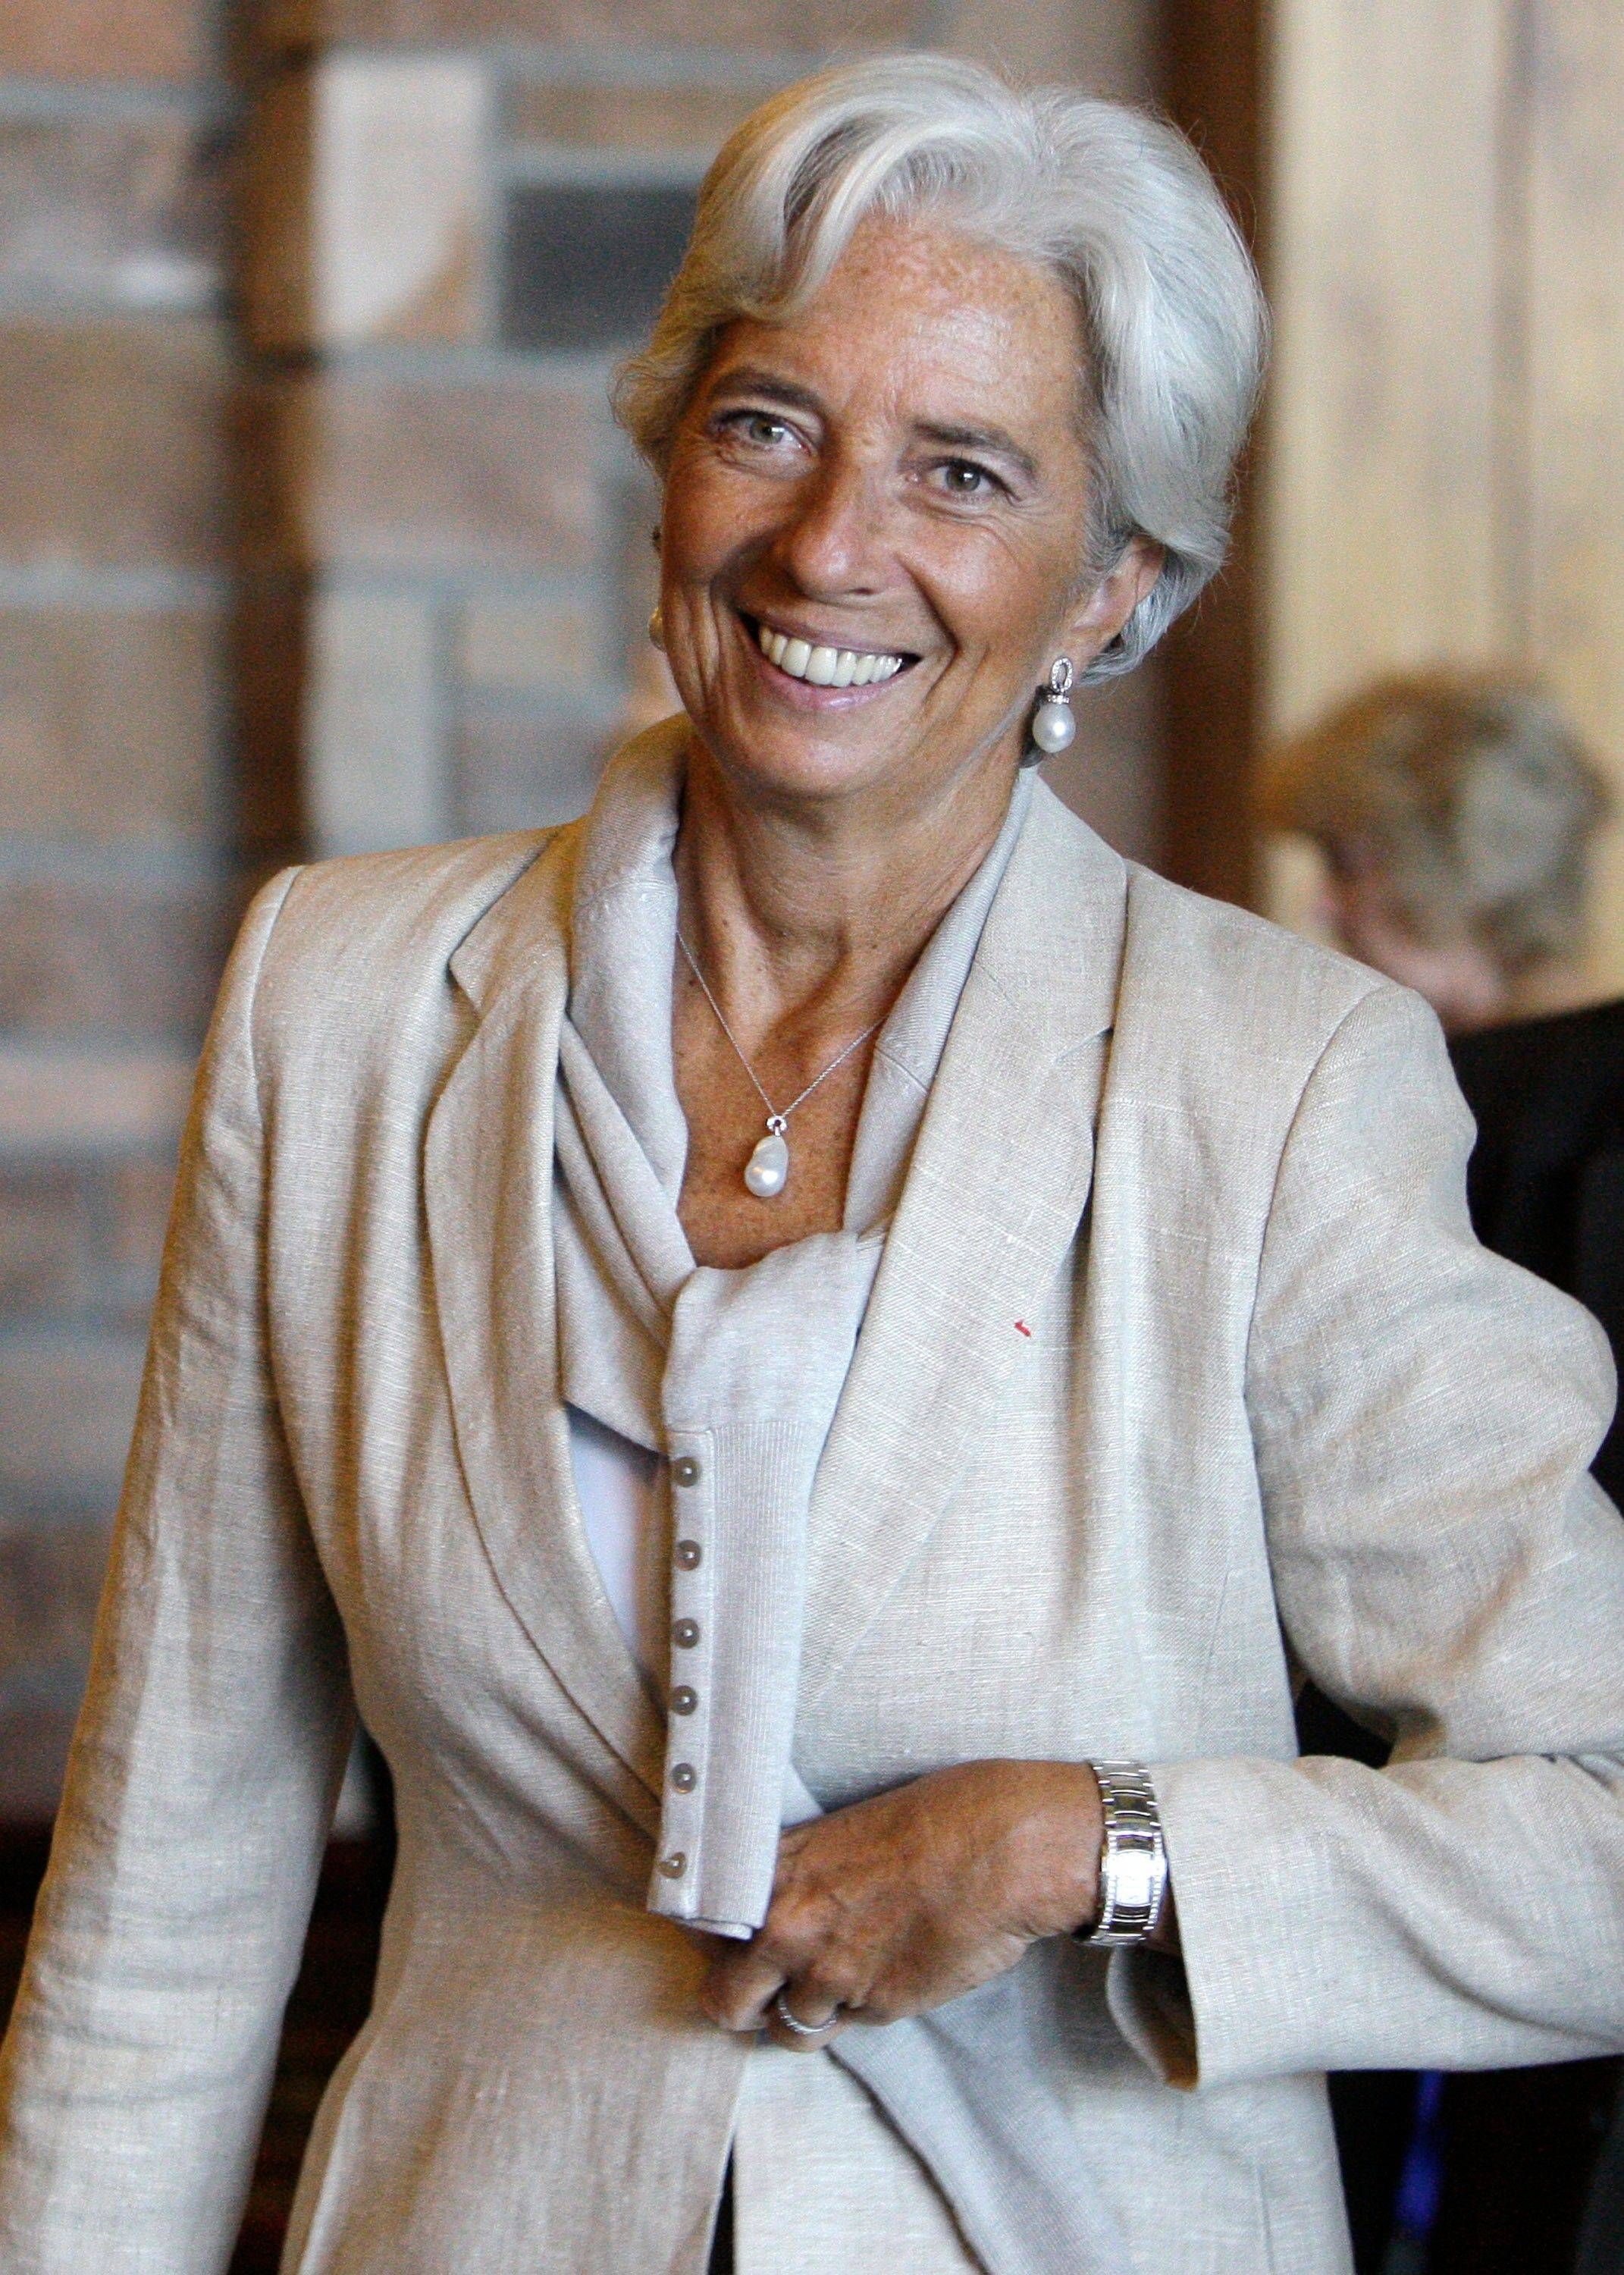 Christine Lagarde, of France, managing director of the International Monetary Fund, arrives Saturday at the morning session of the Economic Policy Symposium at Jackson Hole in Moran, Wyo.